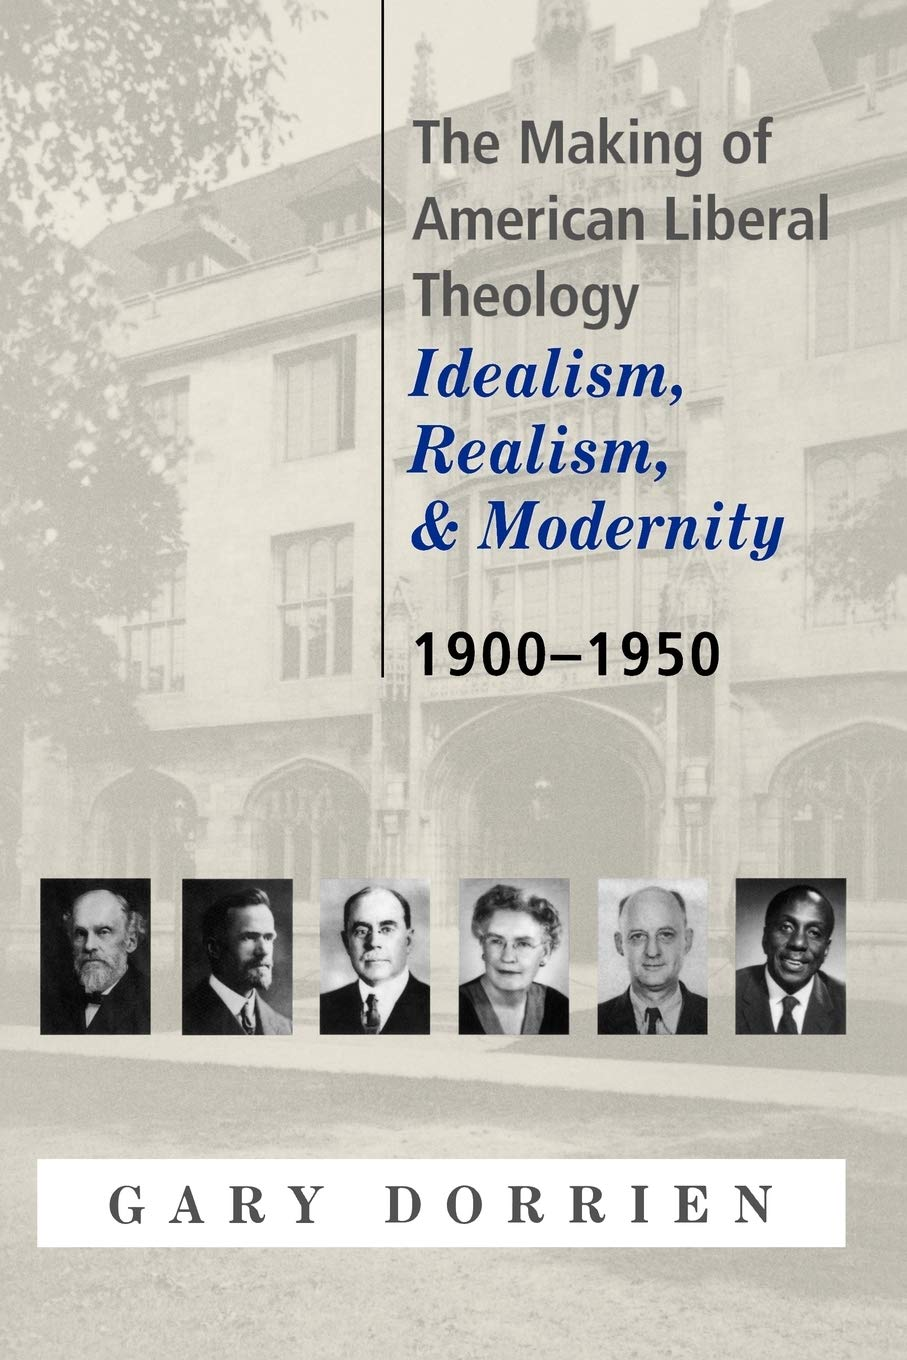 The Making of American Liberal Theology: Idealism, Realism, and Modernity,  1900-1950: Dorrien, Gary: 9780664223557: Amazon.com: Books